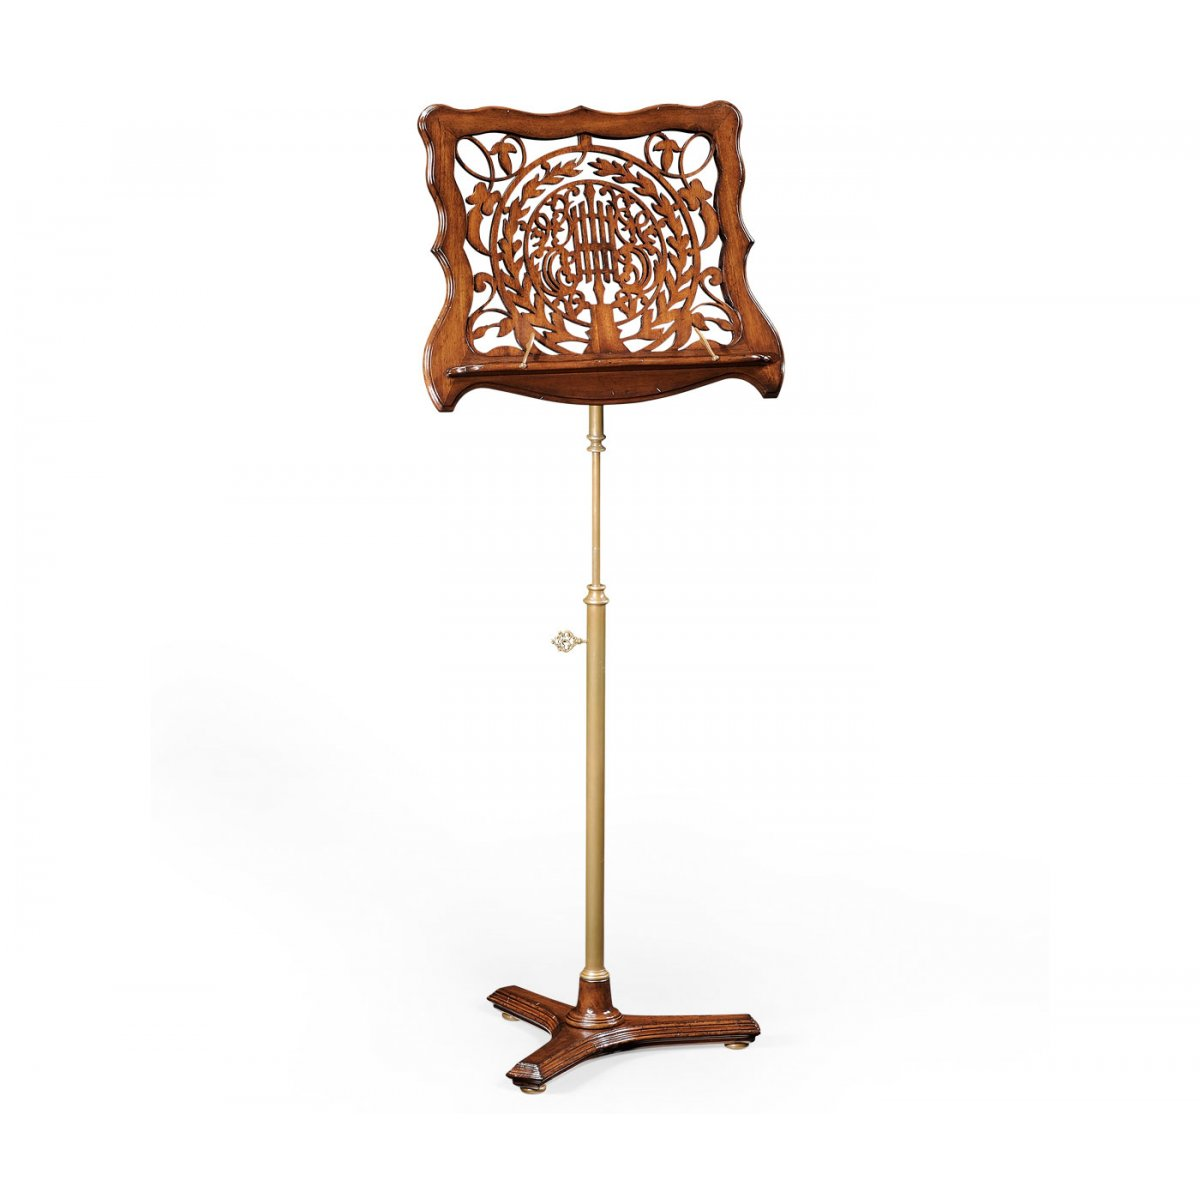 Adjustable Wooden Music Stand With Fretwork Swanky Interiors